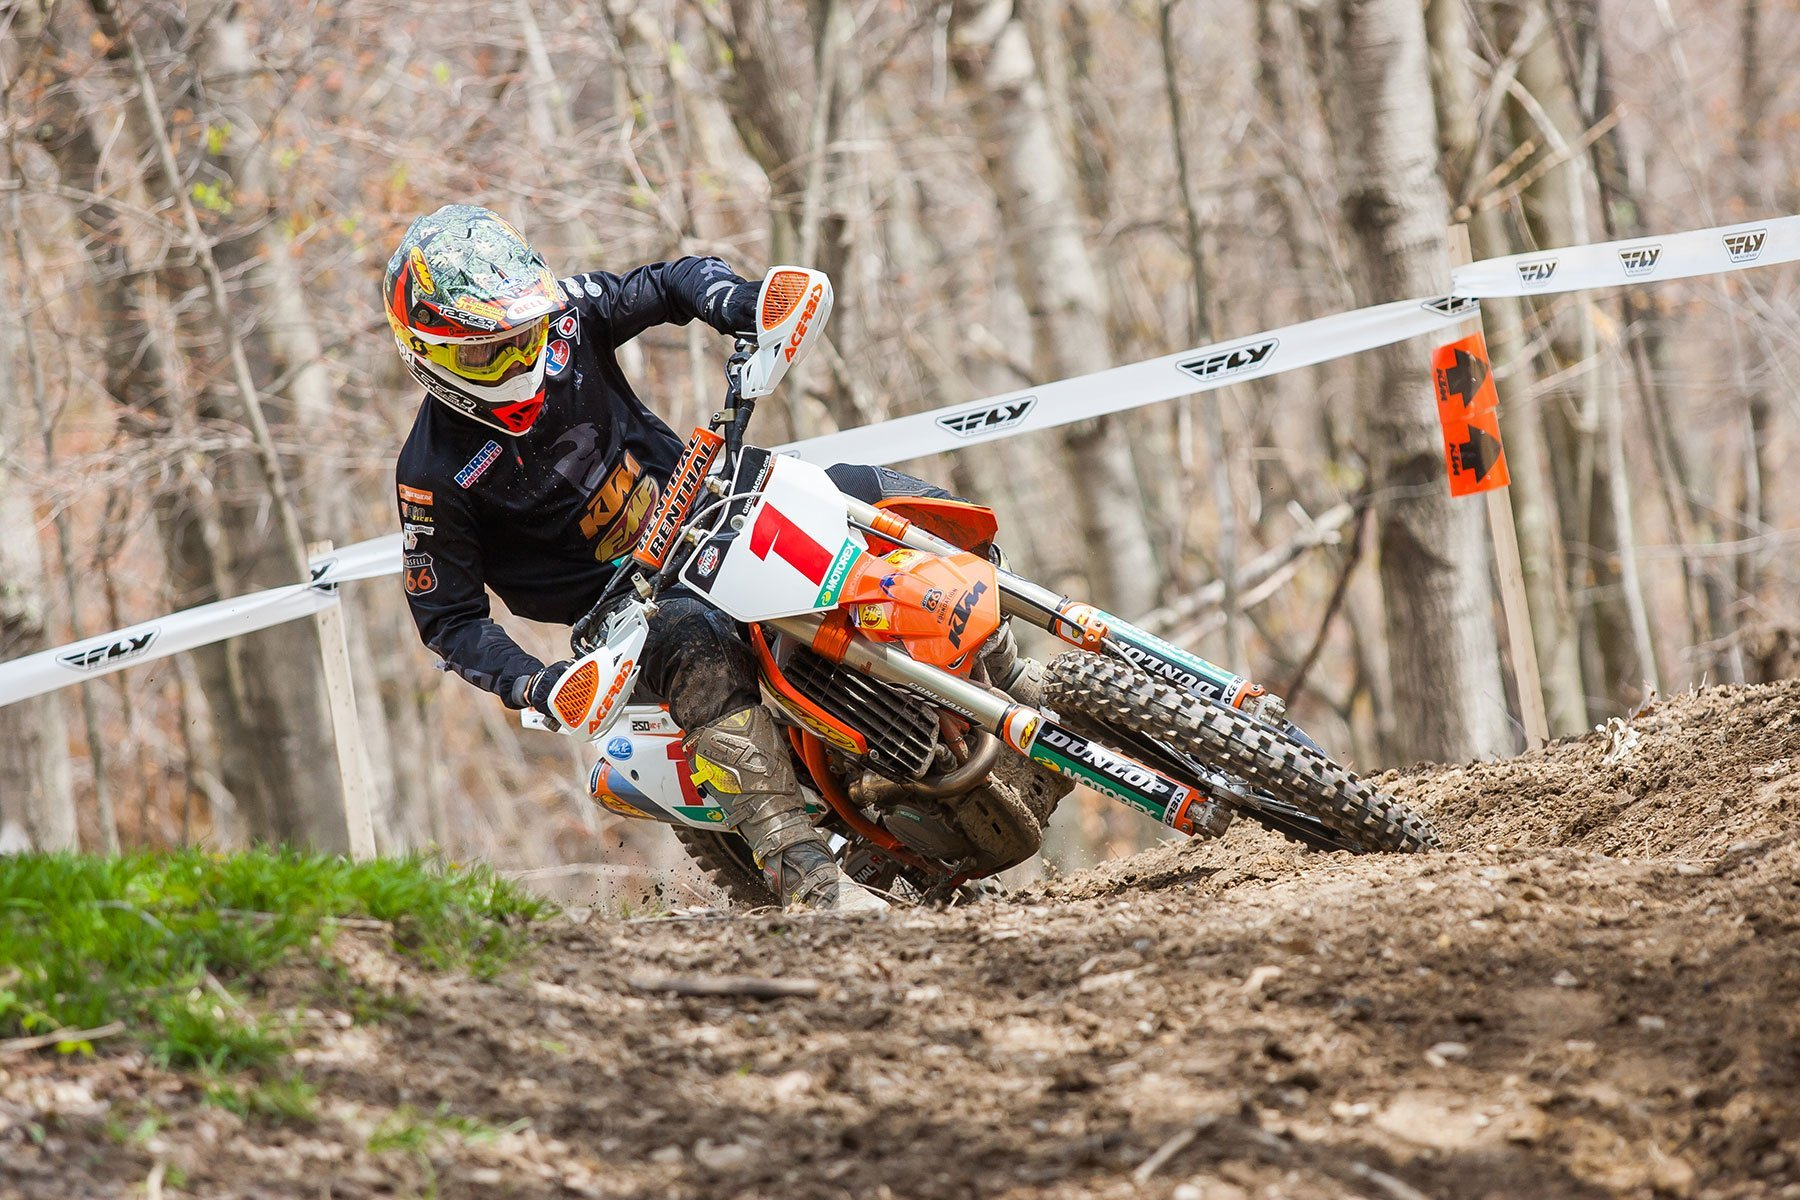 Kailub Russell Sweeps Both Days of Kenda Full Gas Sprint Enduro Round Two